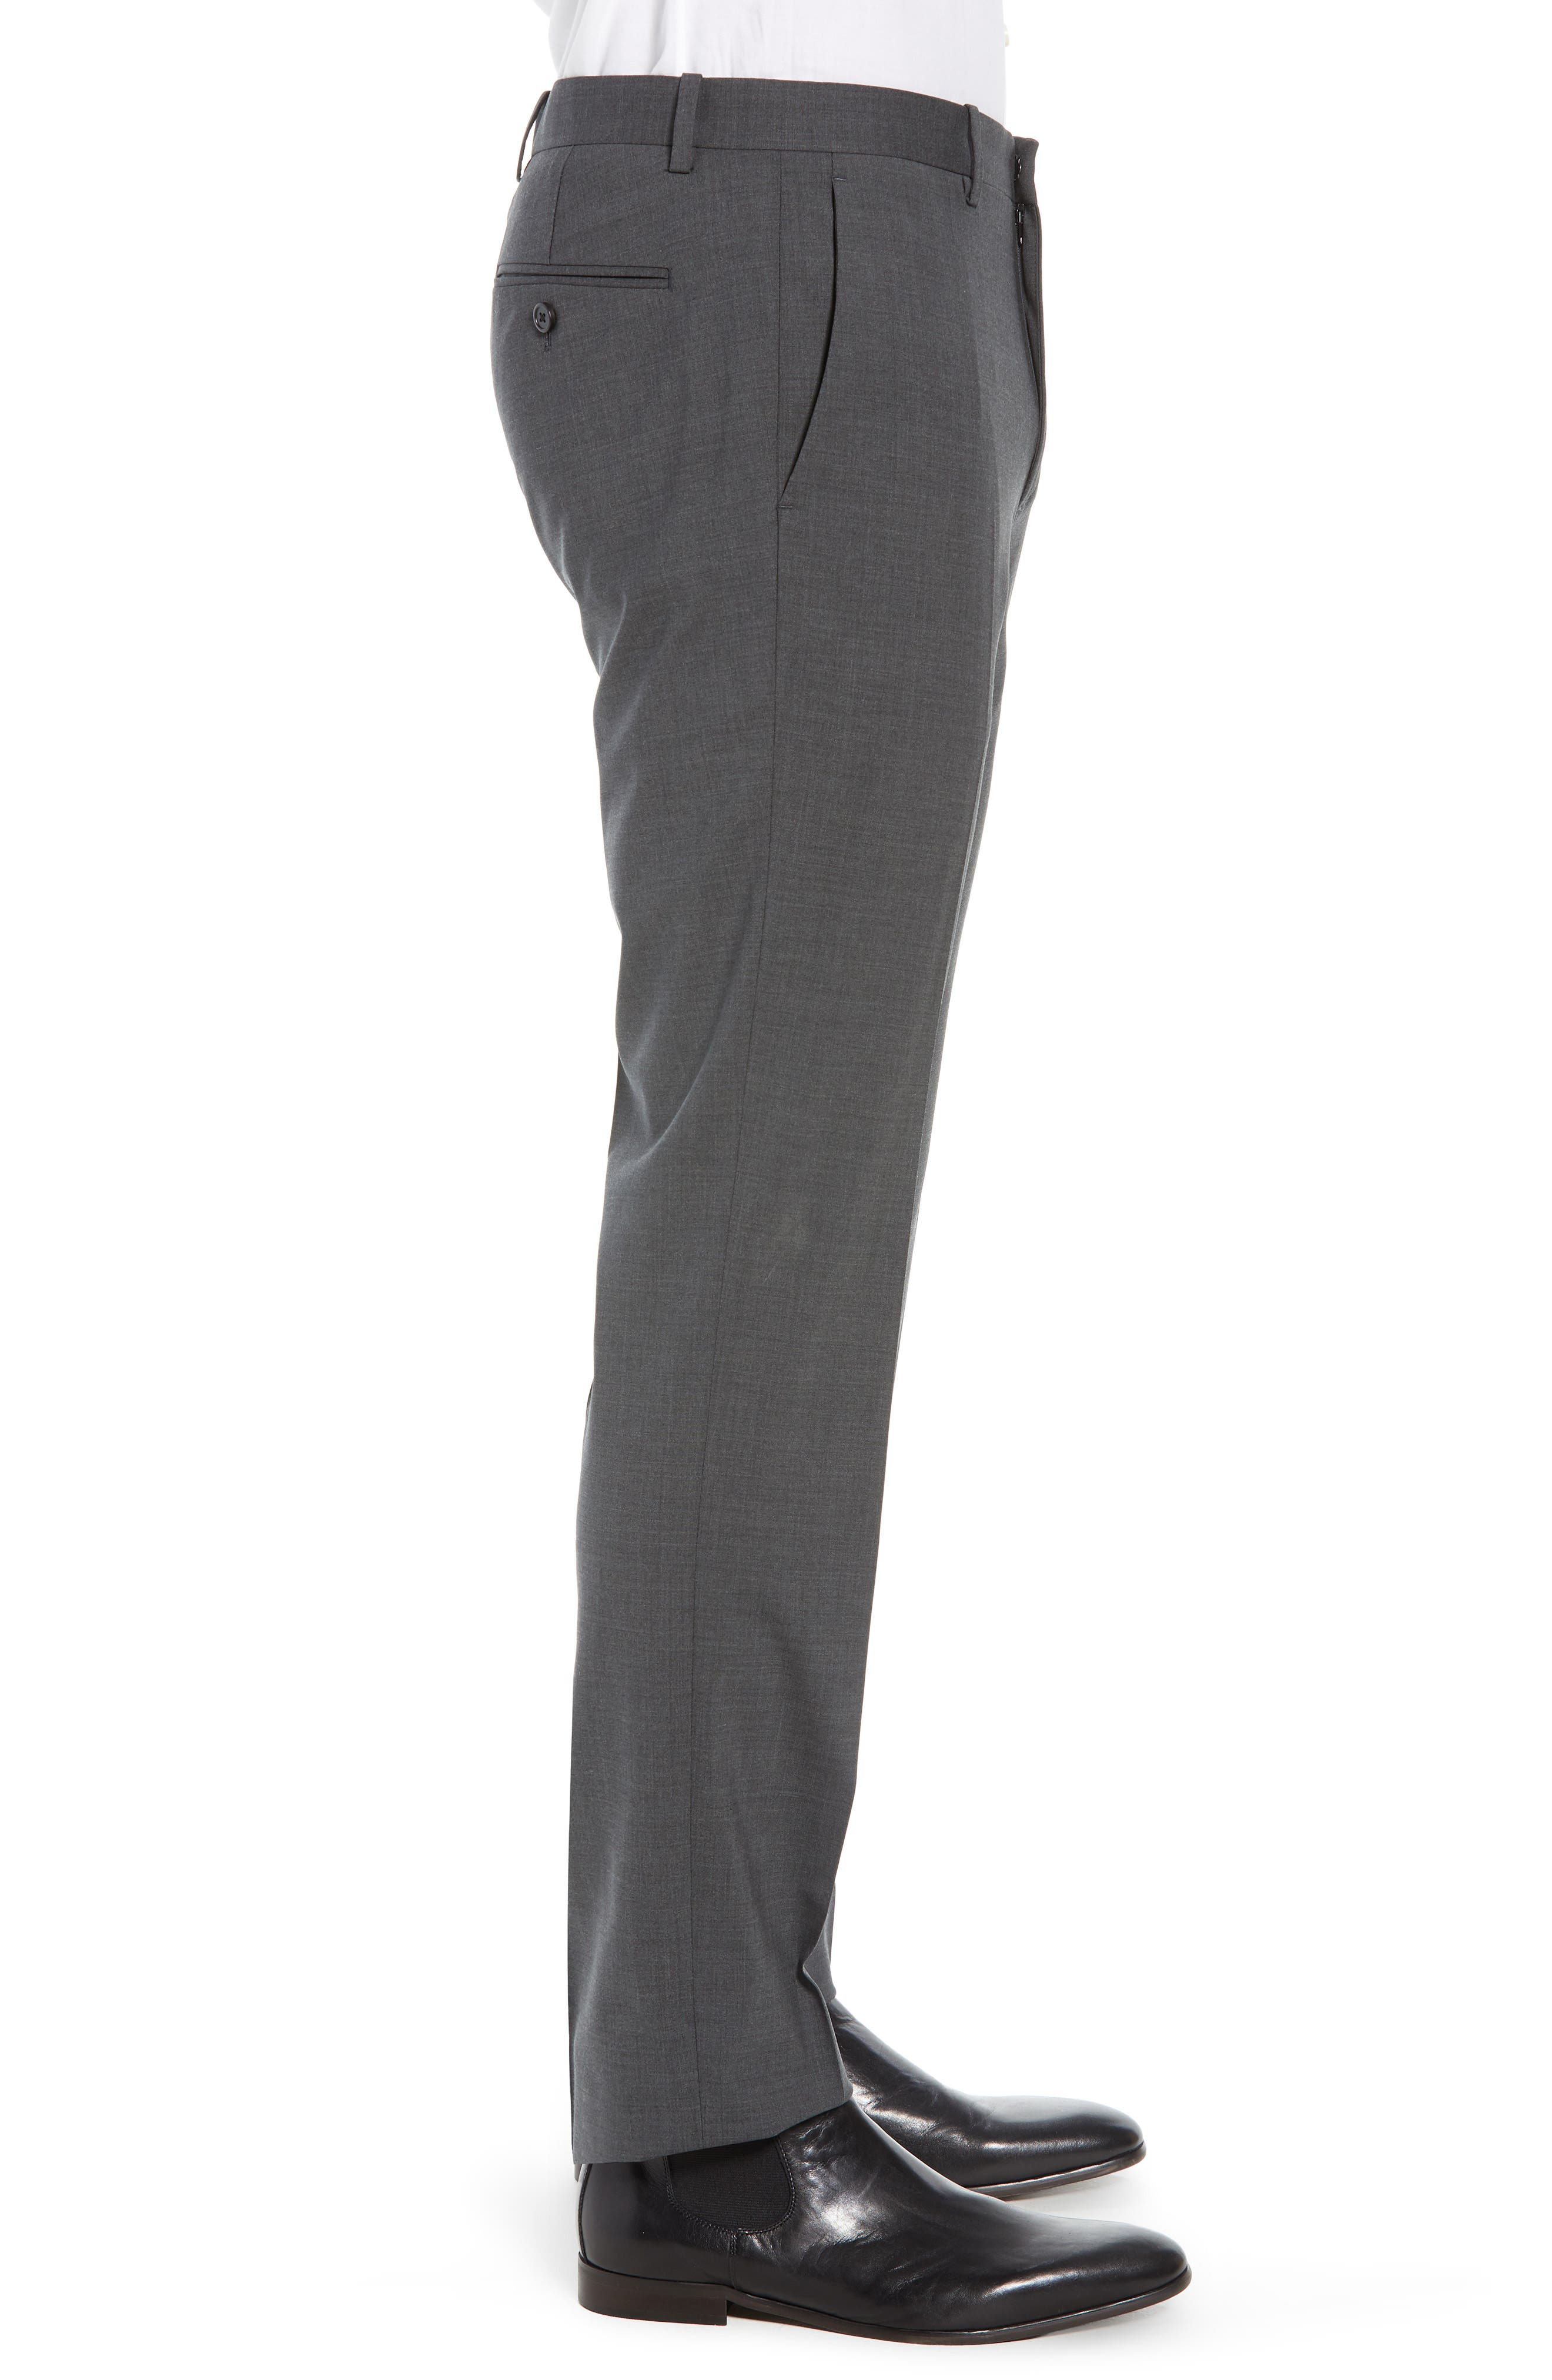 Mayer New Tailor 2 Wool Trousers,                             Alternate thumbnail 3, color,                             CHARCOAL